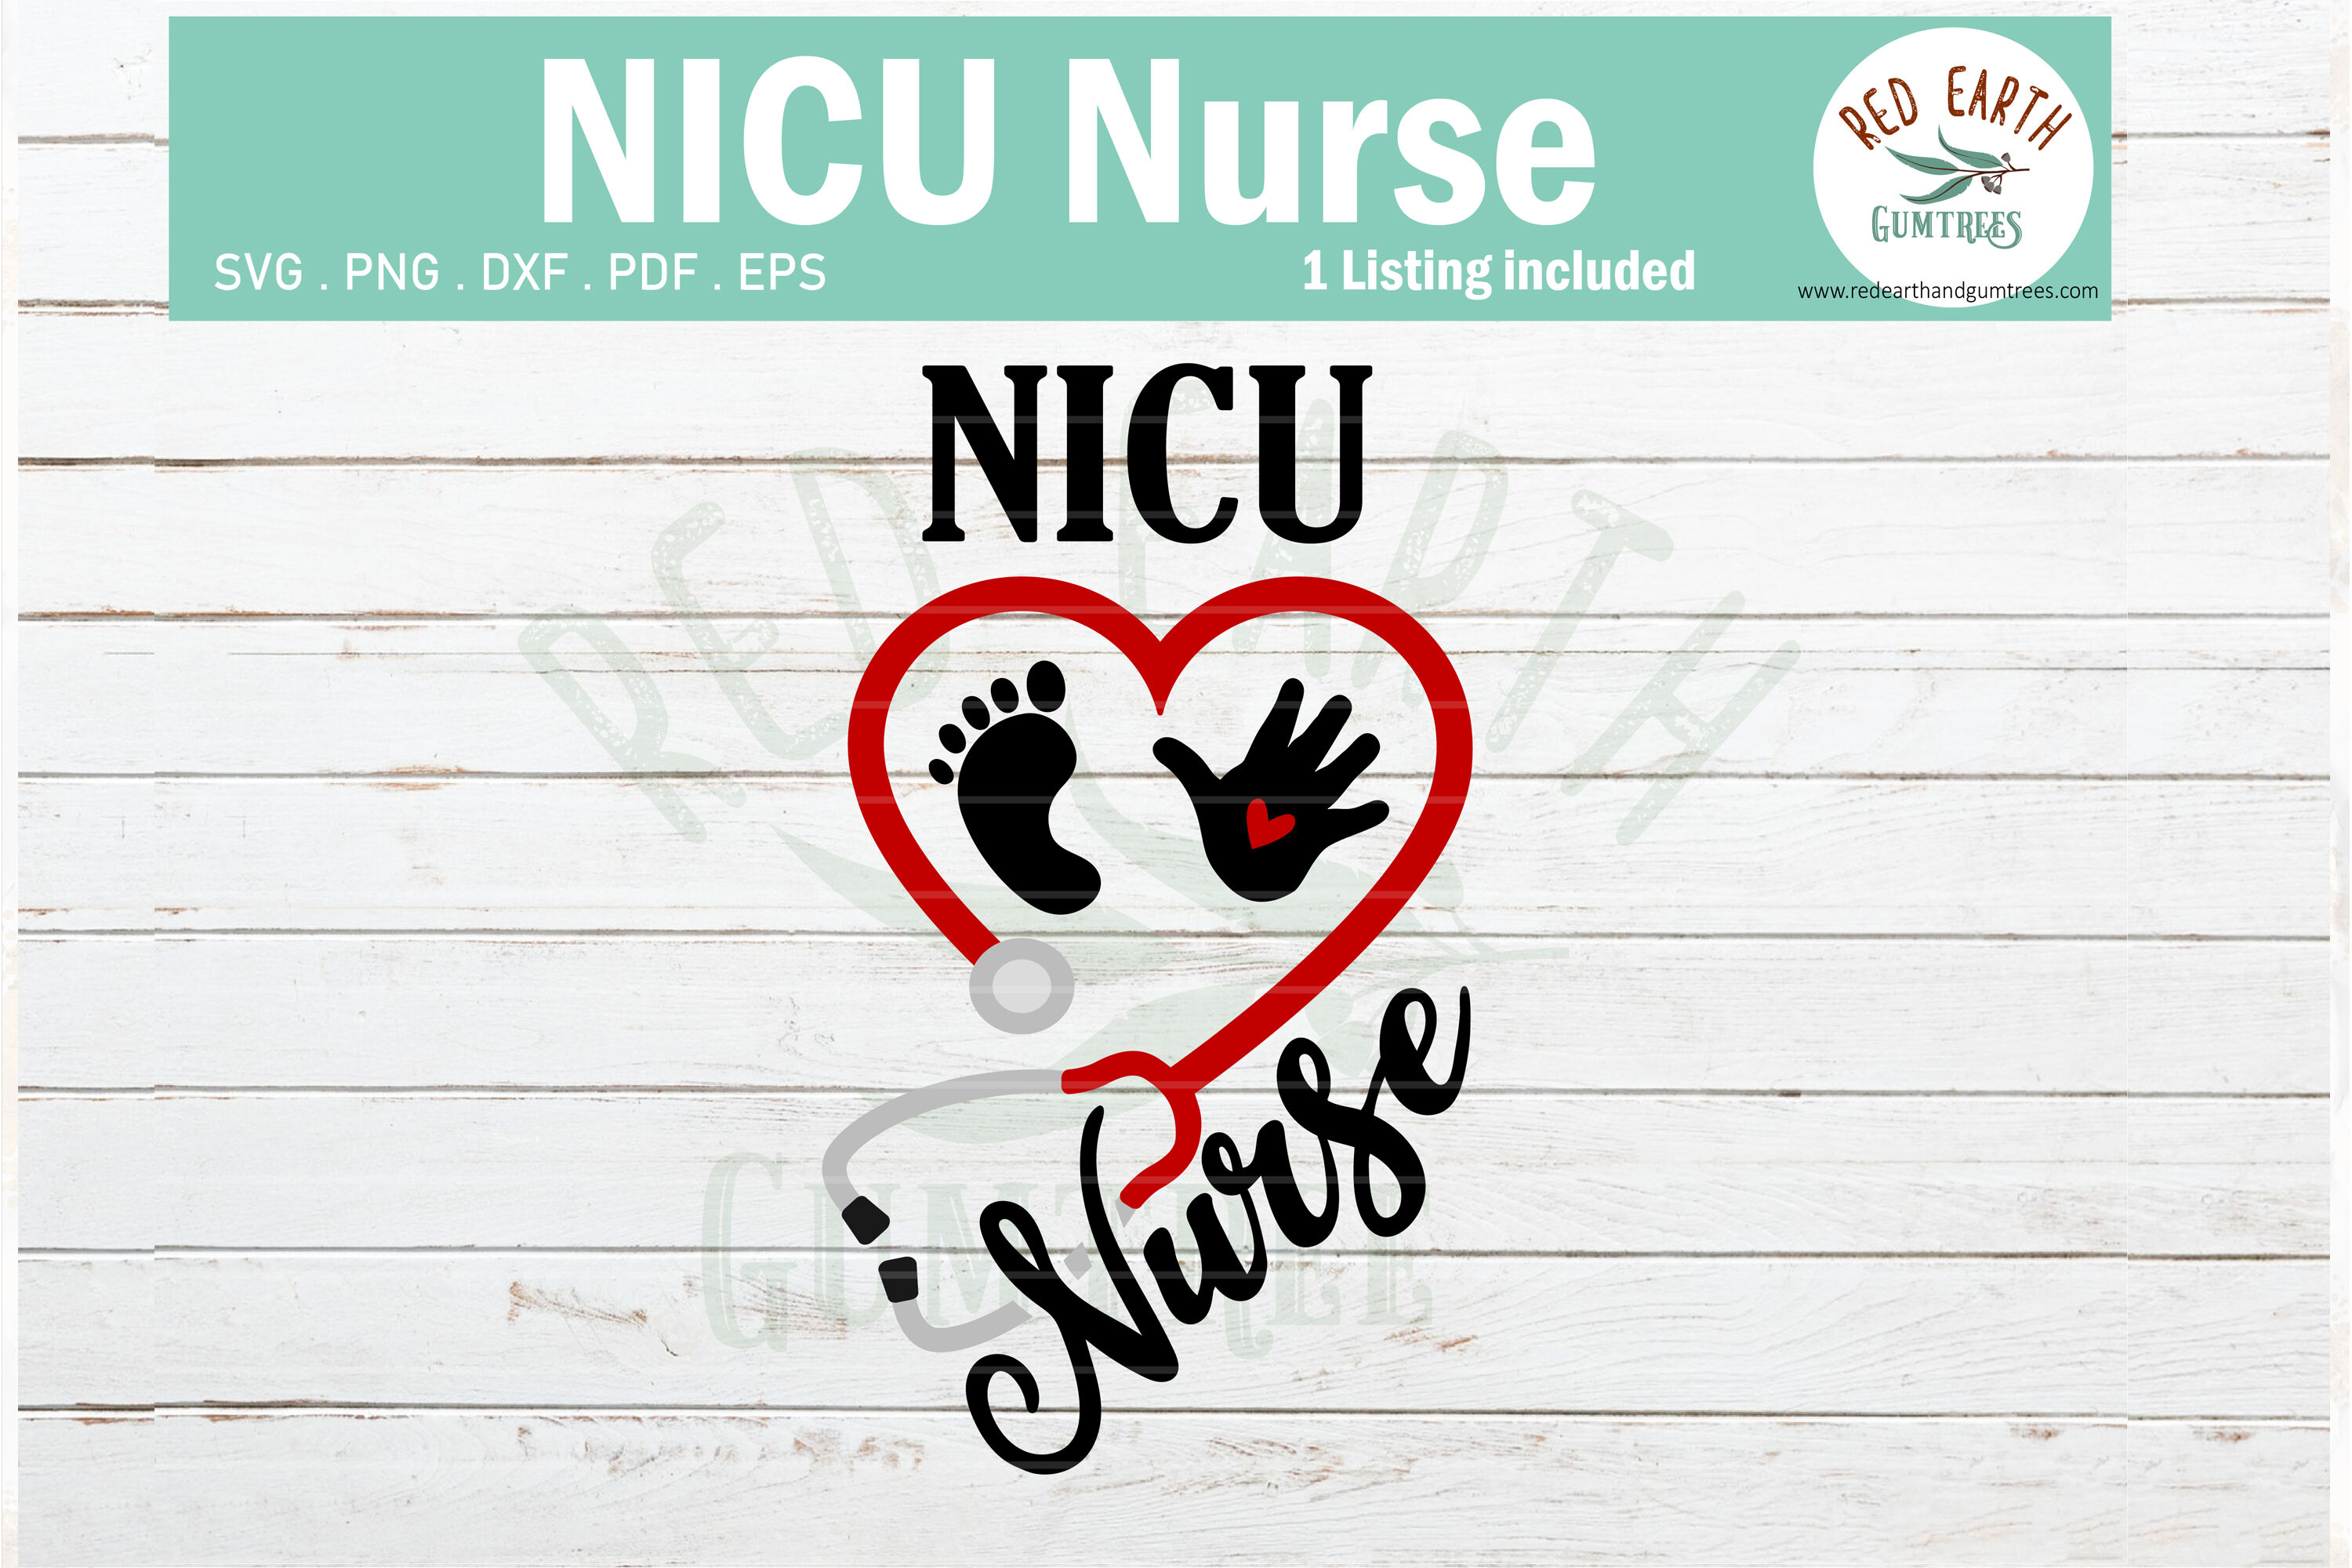 Nicu Nurse Heart Stethoscope Svg Baby Hand Feet Svg Png Dxf By